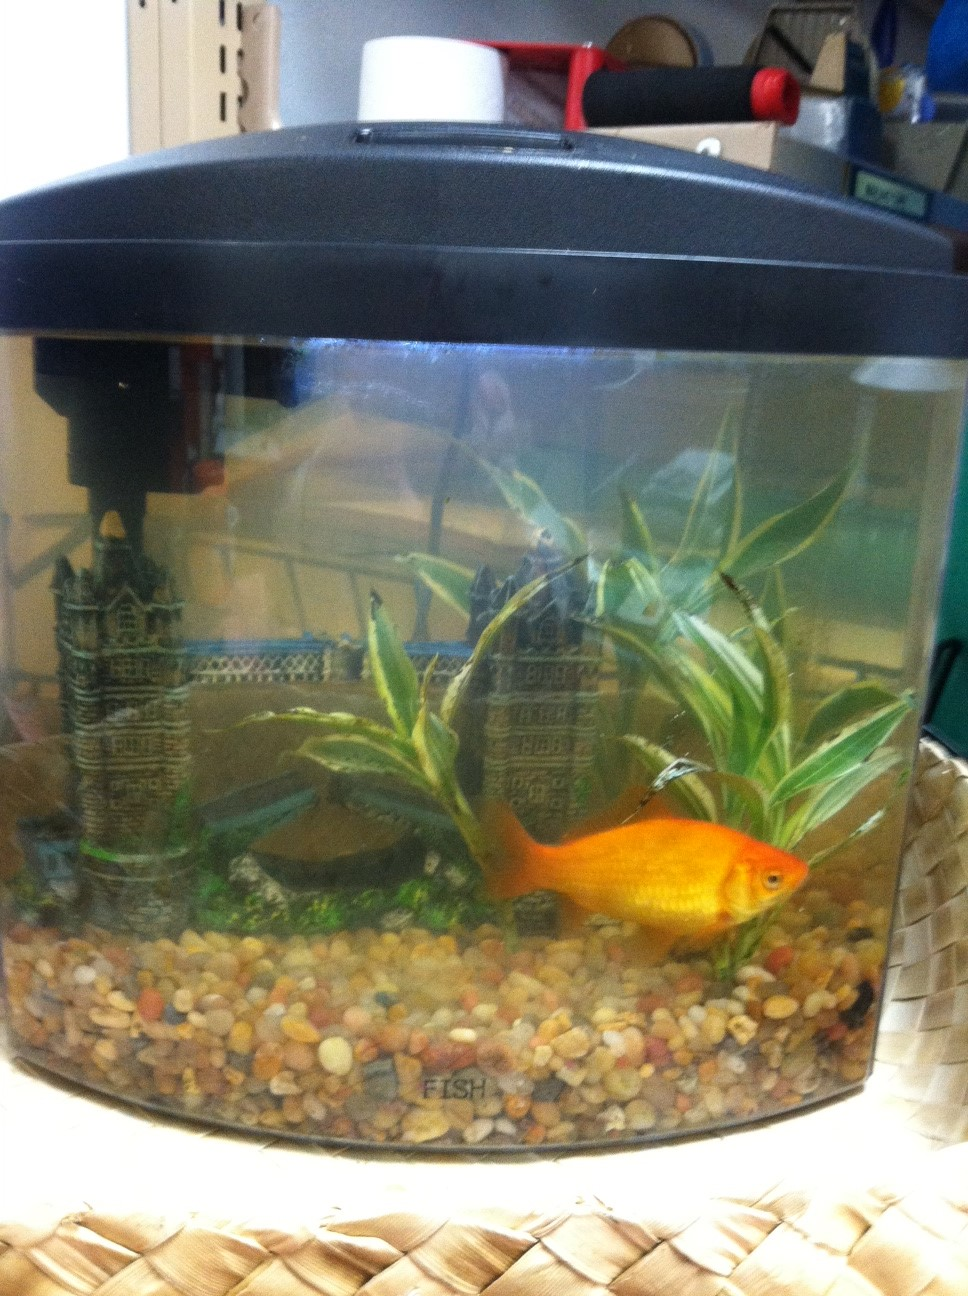 Freshwater aquarium fish library - Goldfish Carry Fortuitous Connotations In Many Cultures They Are One Of The Symbols Of The Buddha They Represent Good Luck Prosperity And Happiness